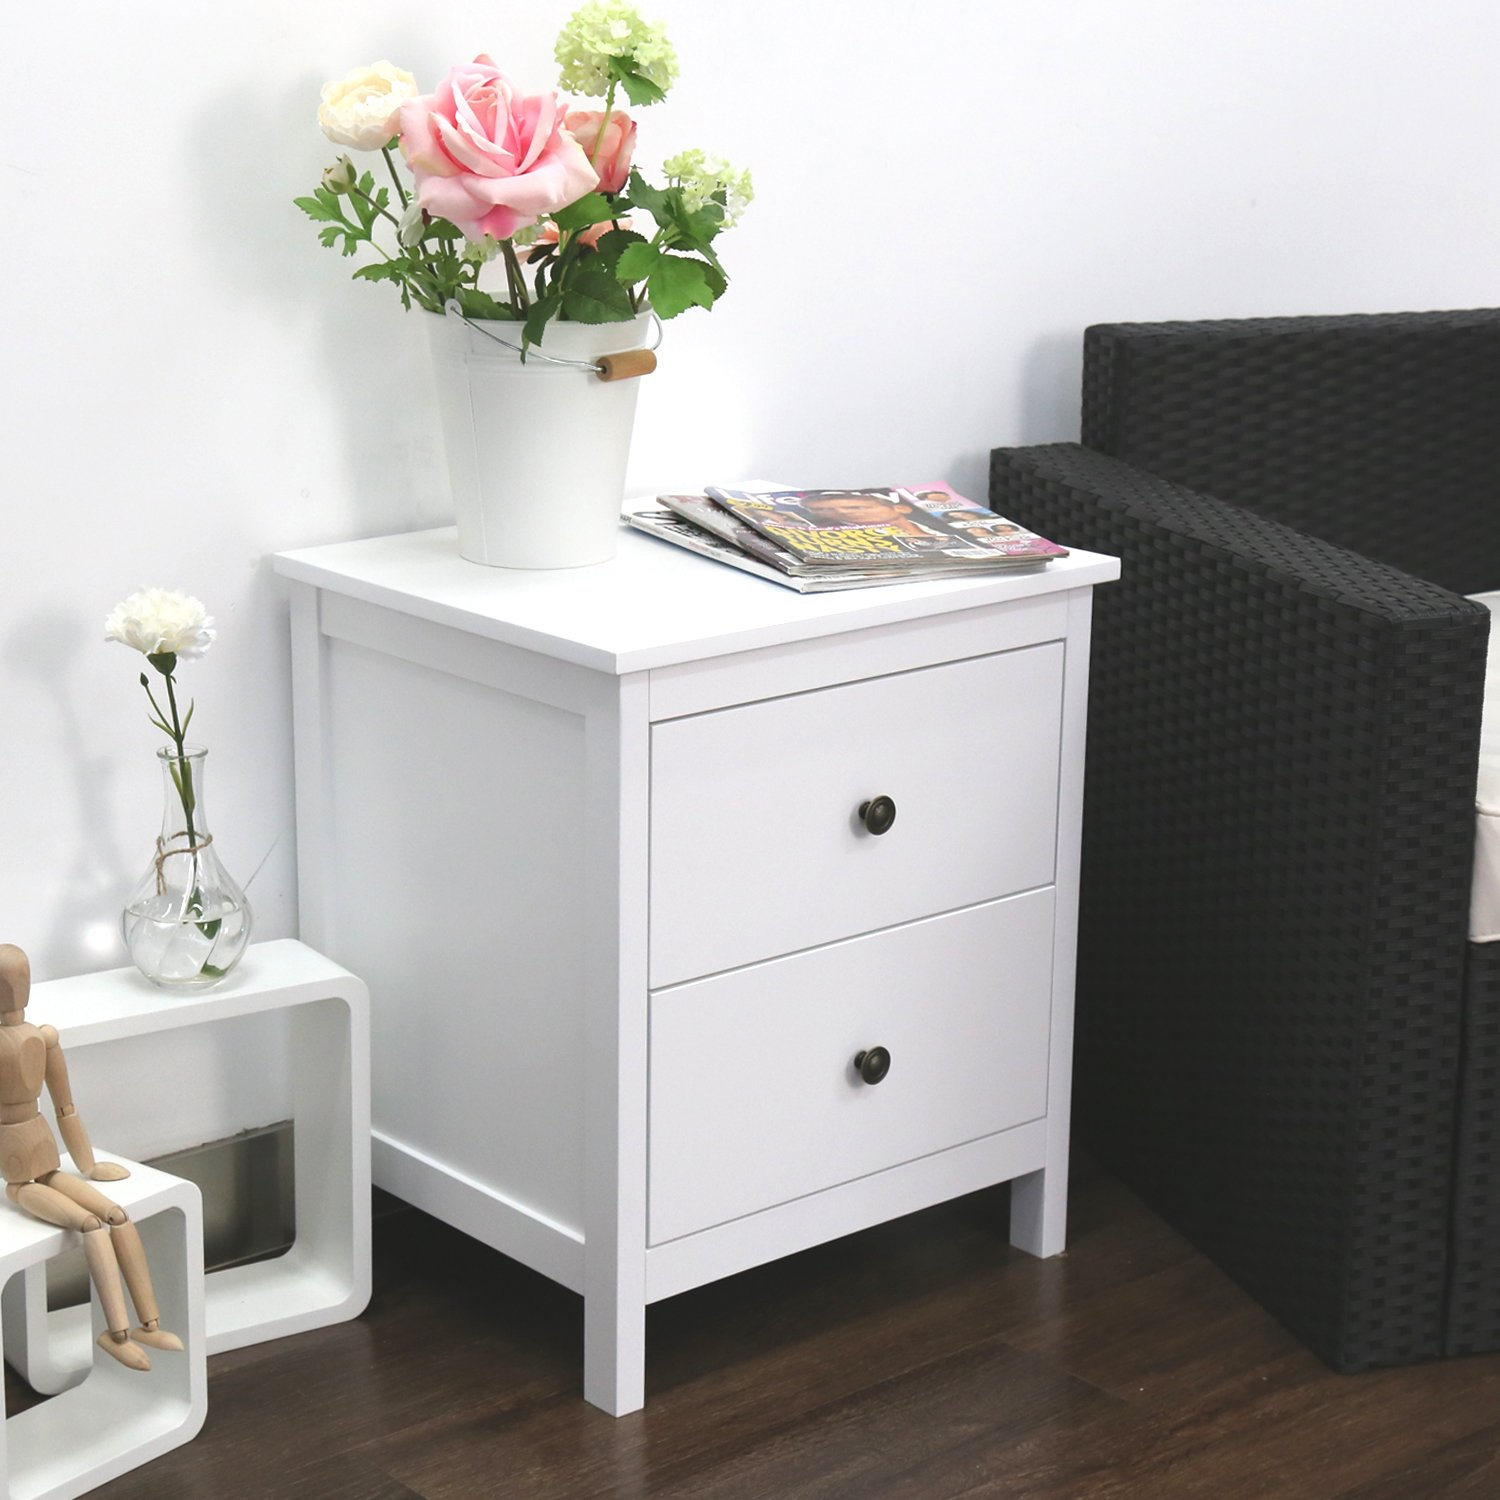 Kinbor Kinbor Bedroom Furniture Night Stand Table with Double Drawers and Cabinet for Storage (White-D)